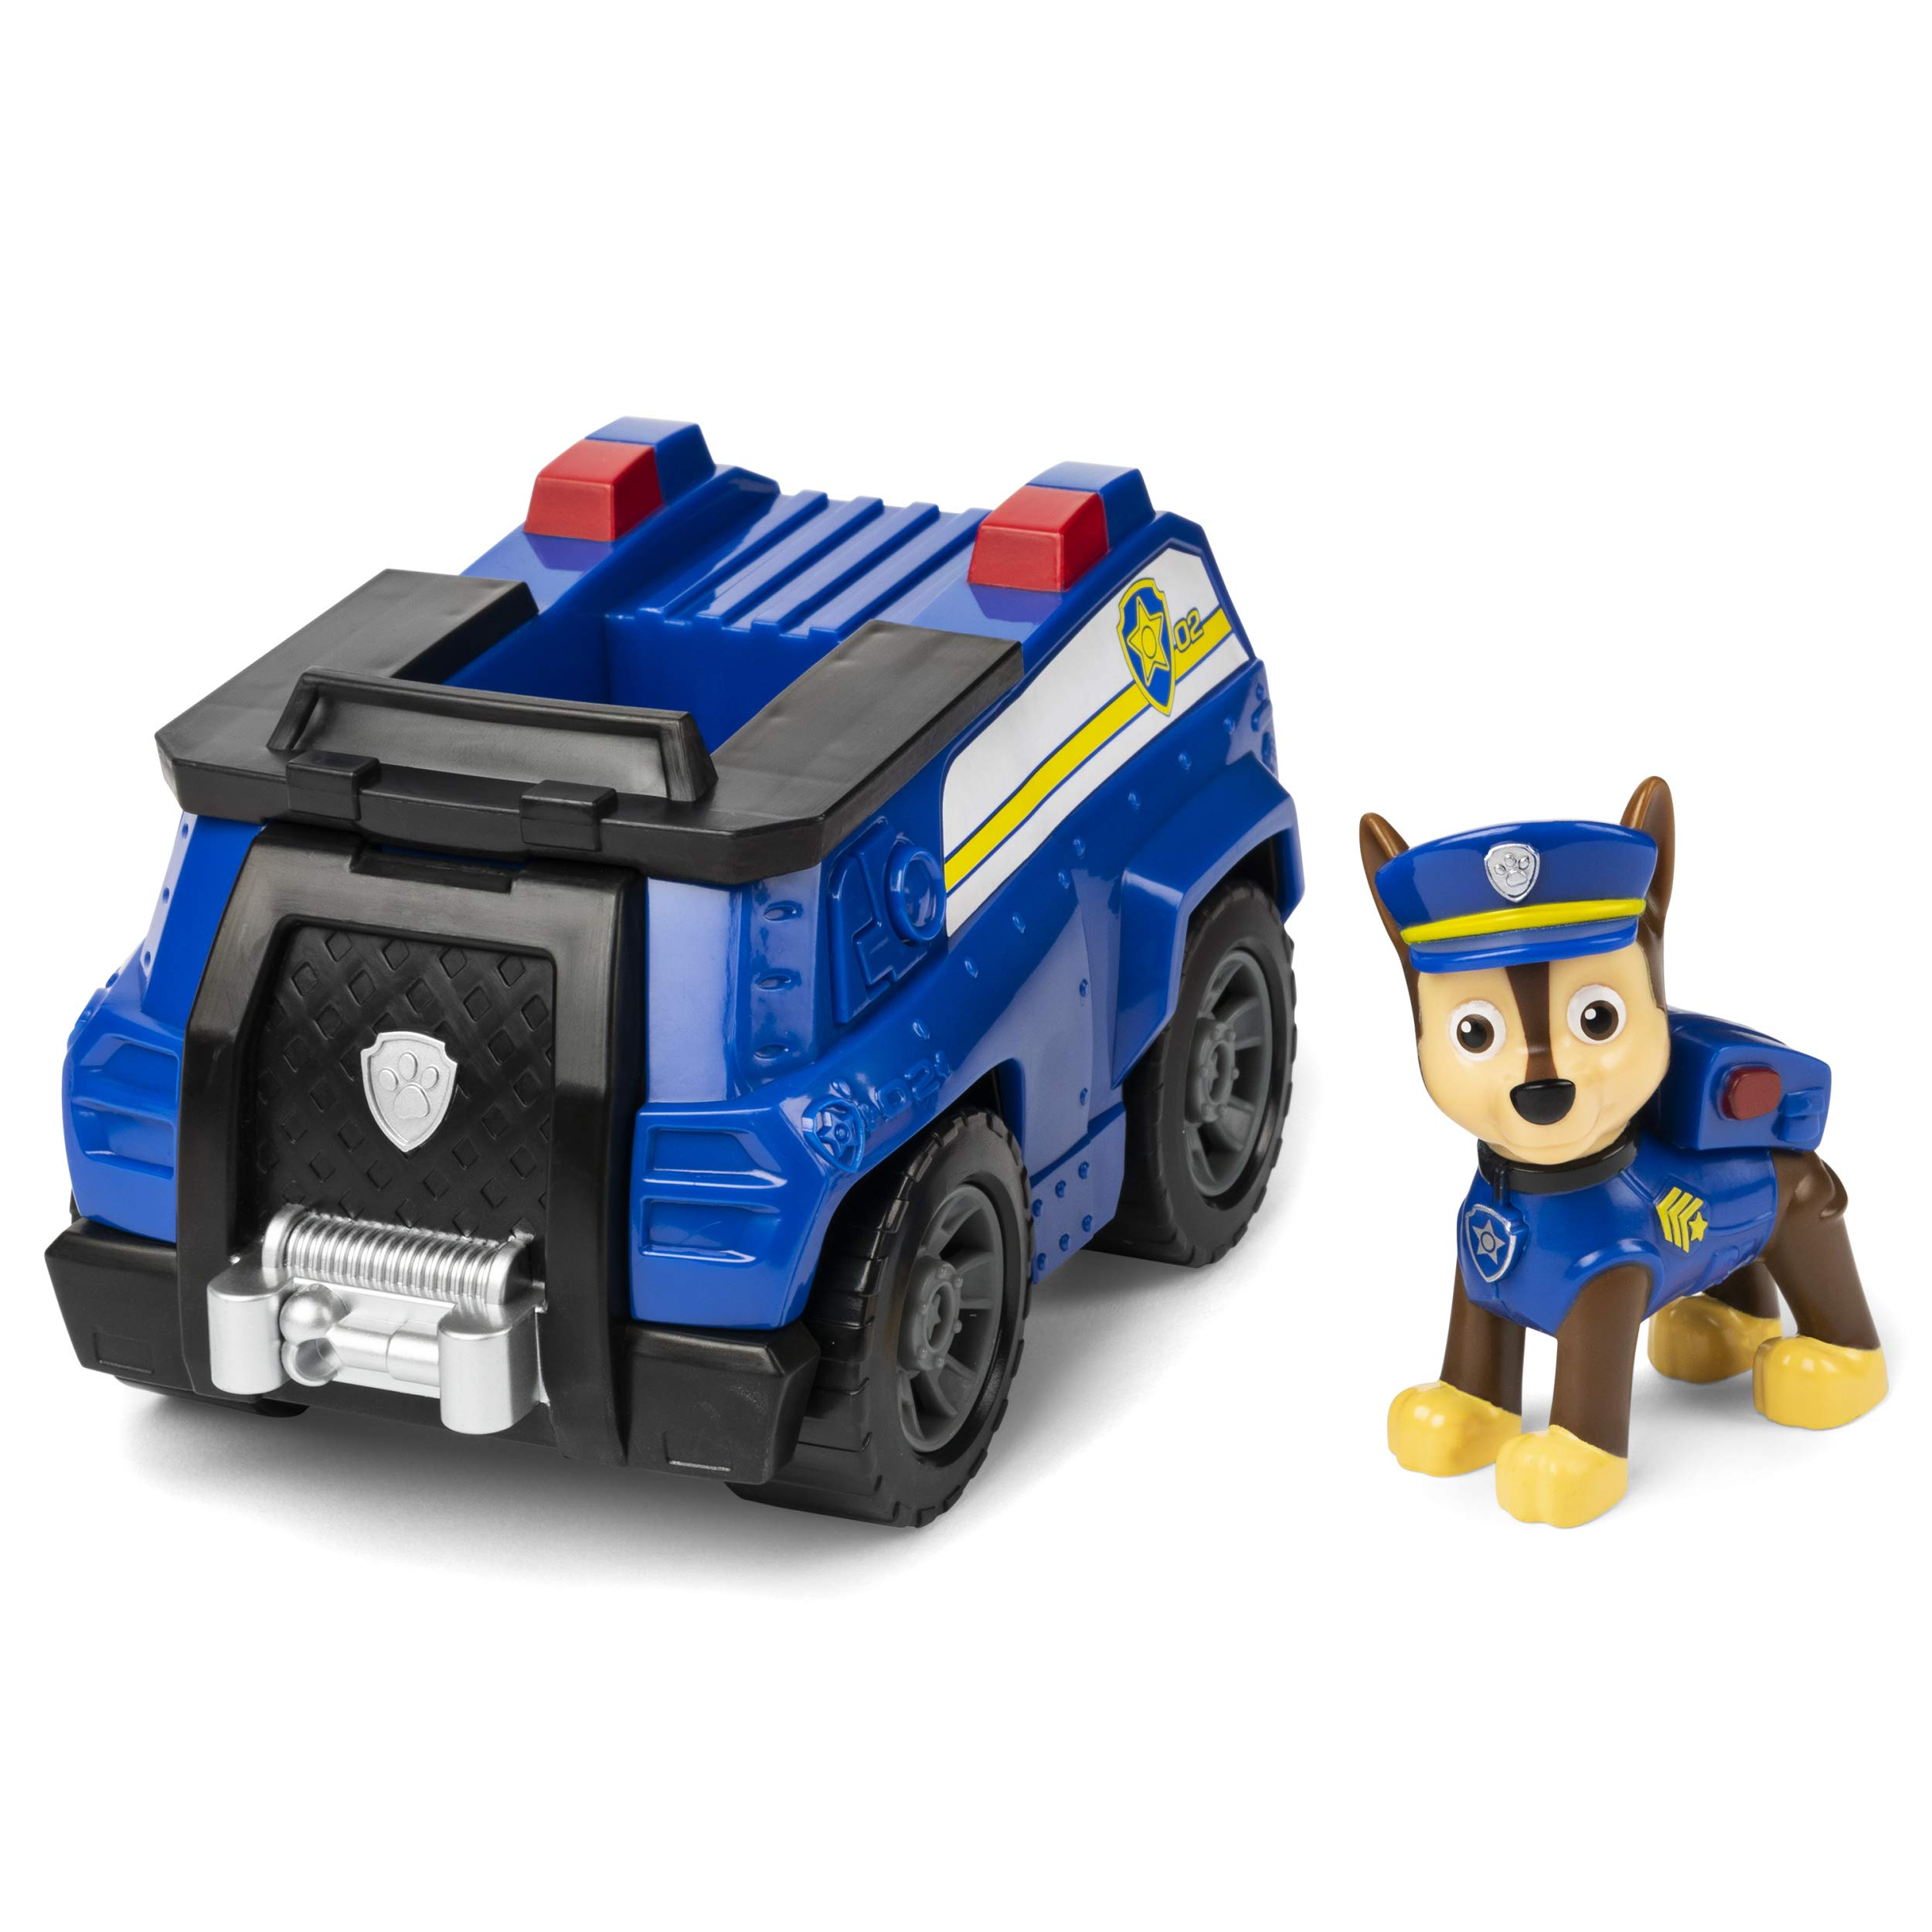 Paw Patrol Chase's Patrol Cruiser Vehicle with Collectible Figure for Kids Aged 3 and Up